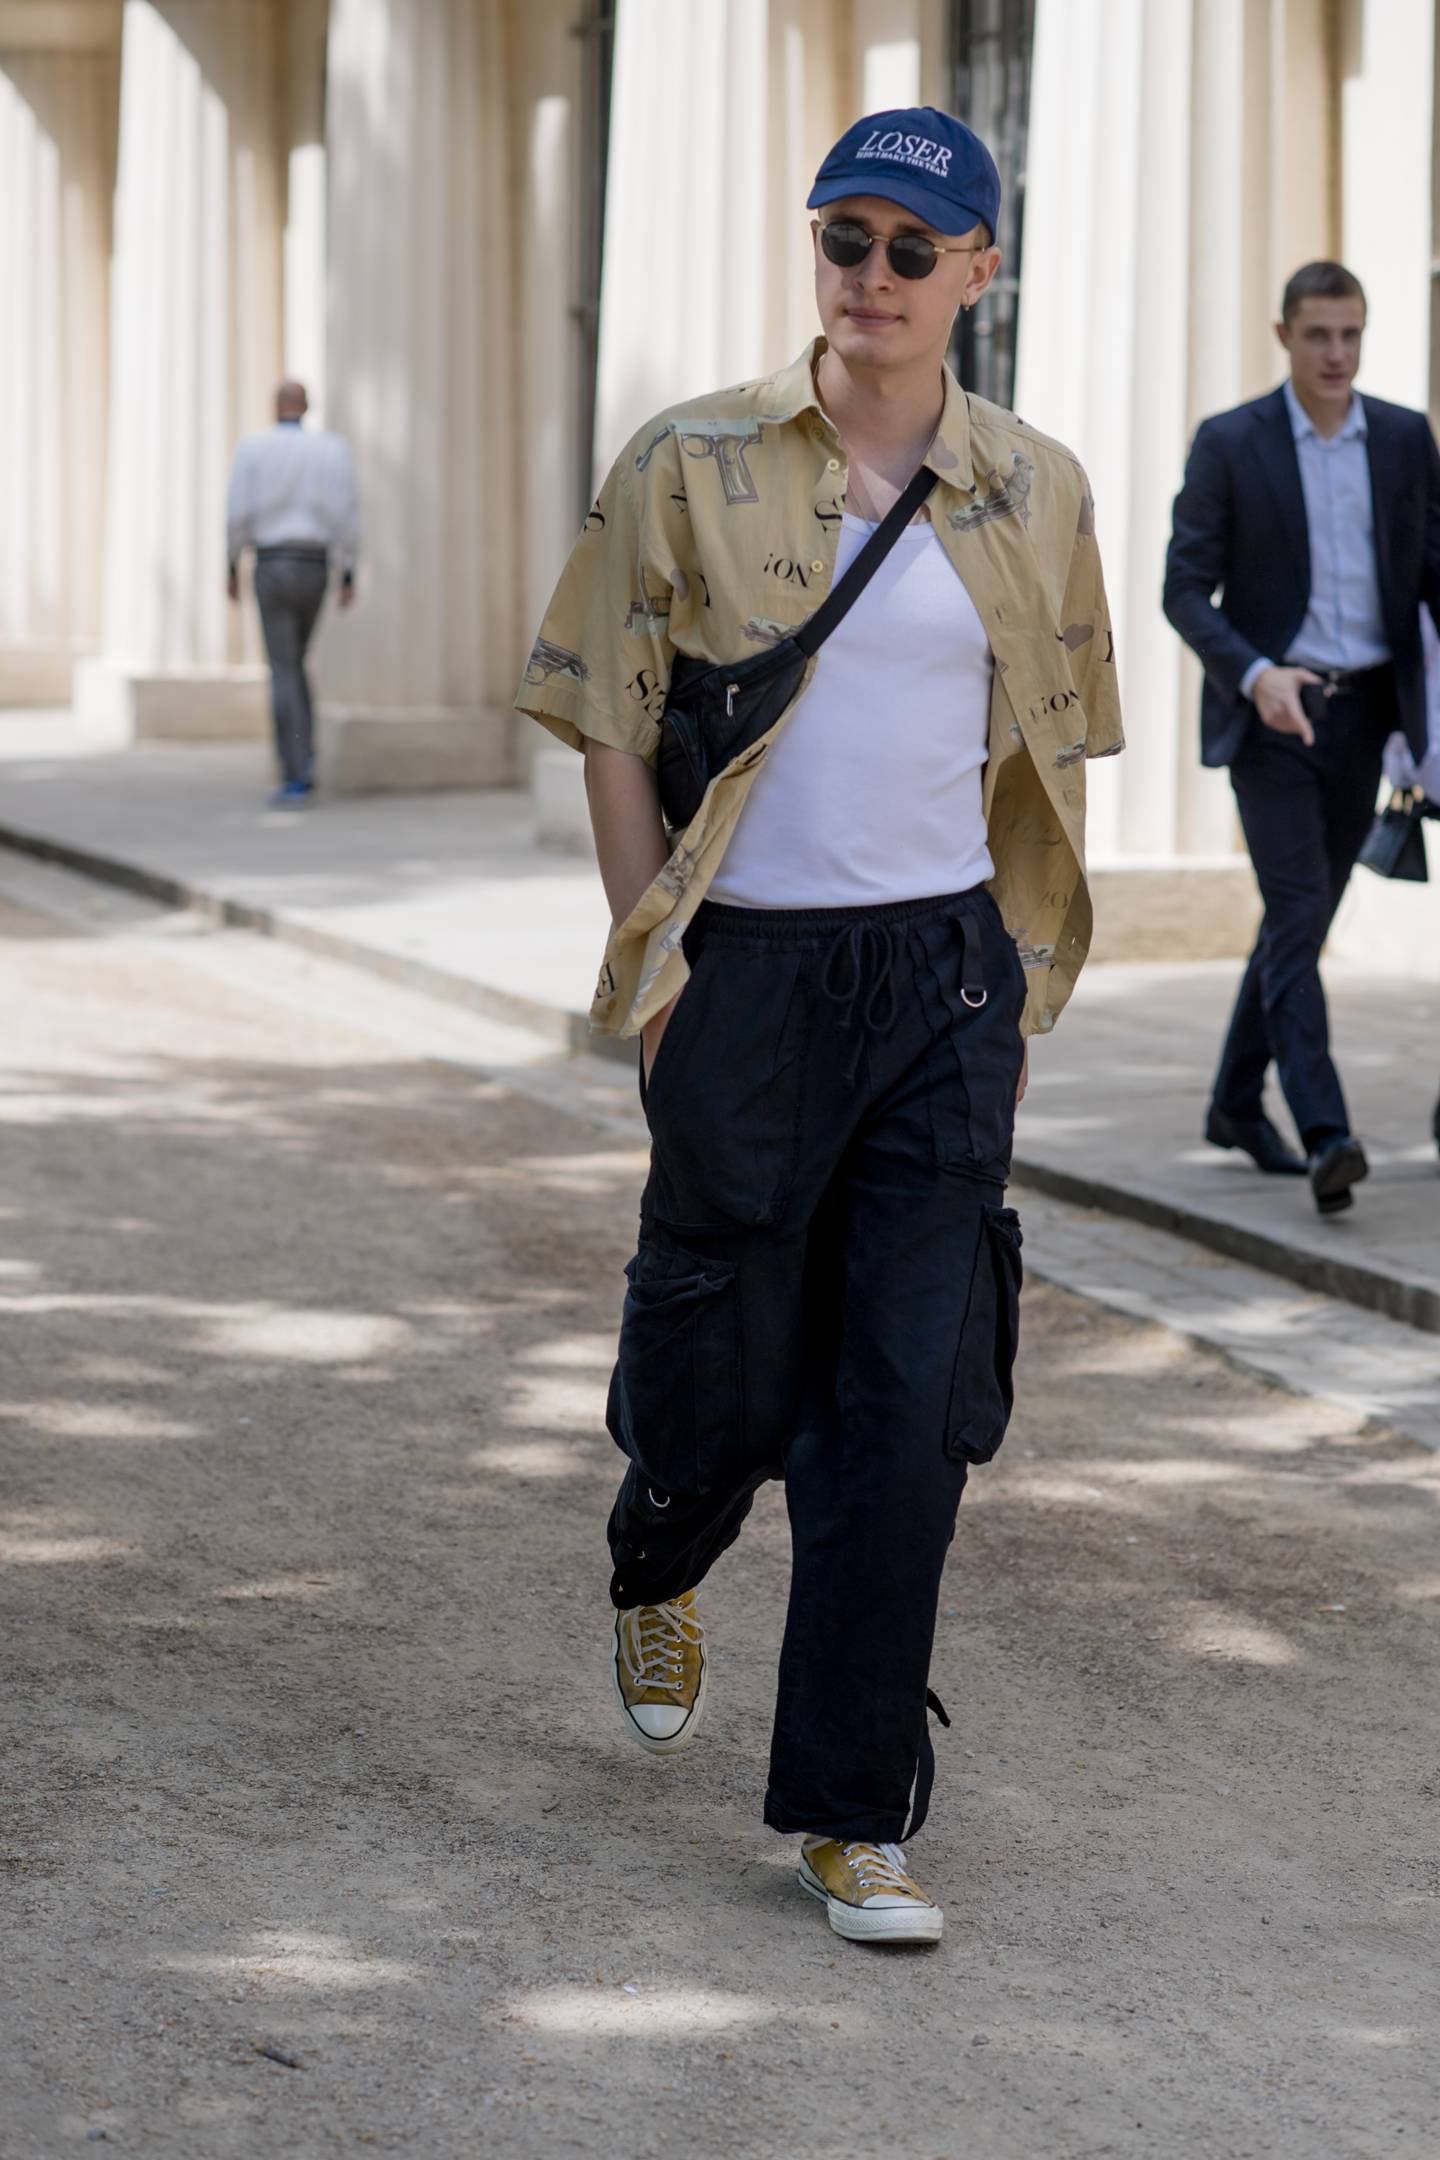 London Fashion Week Men's S/S 2019 Man with Vintage Print Shirt and Bumbag